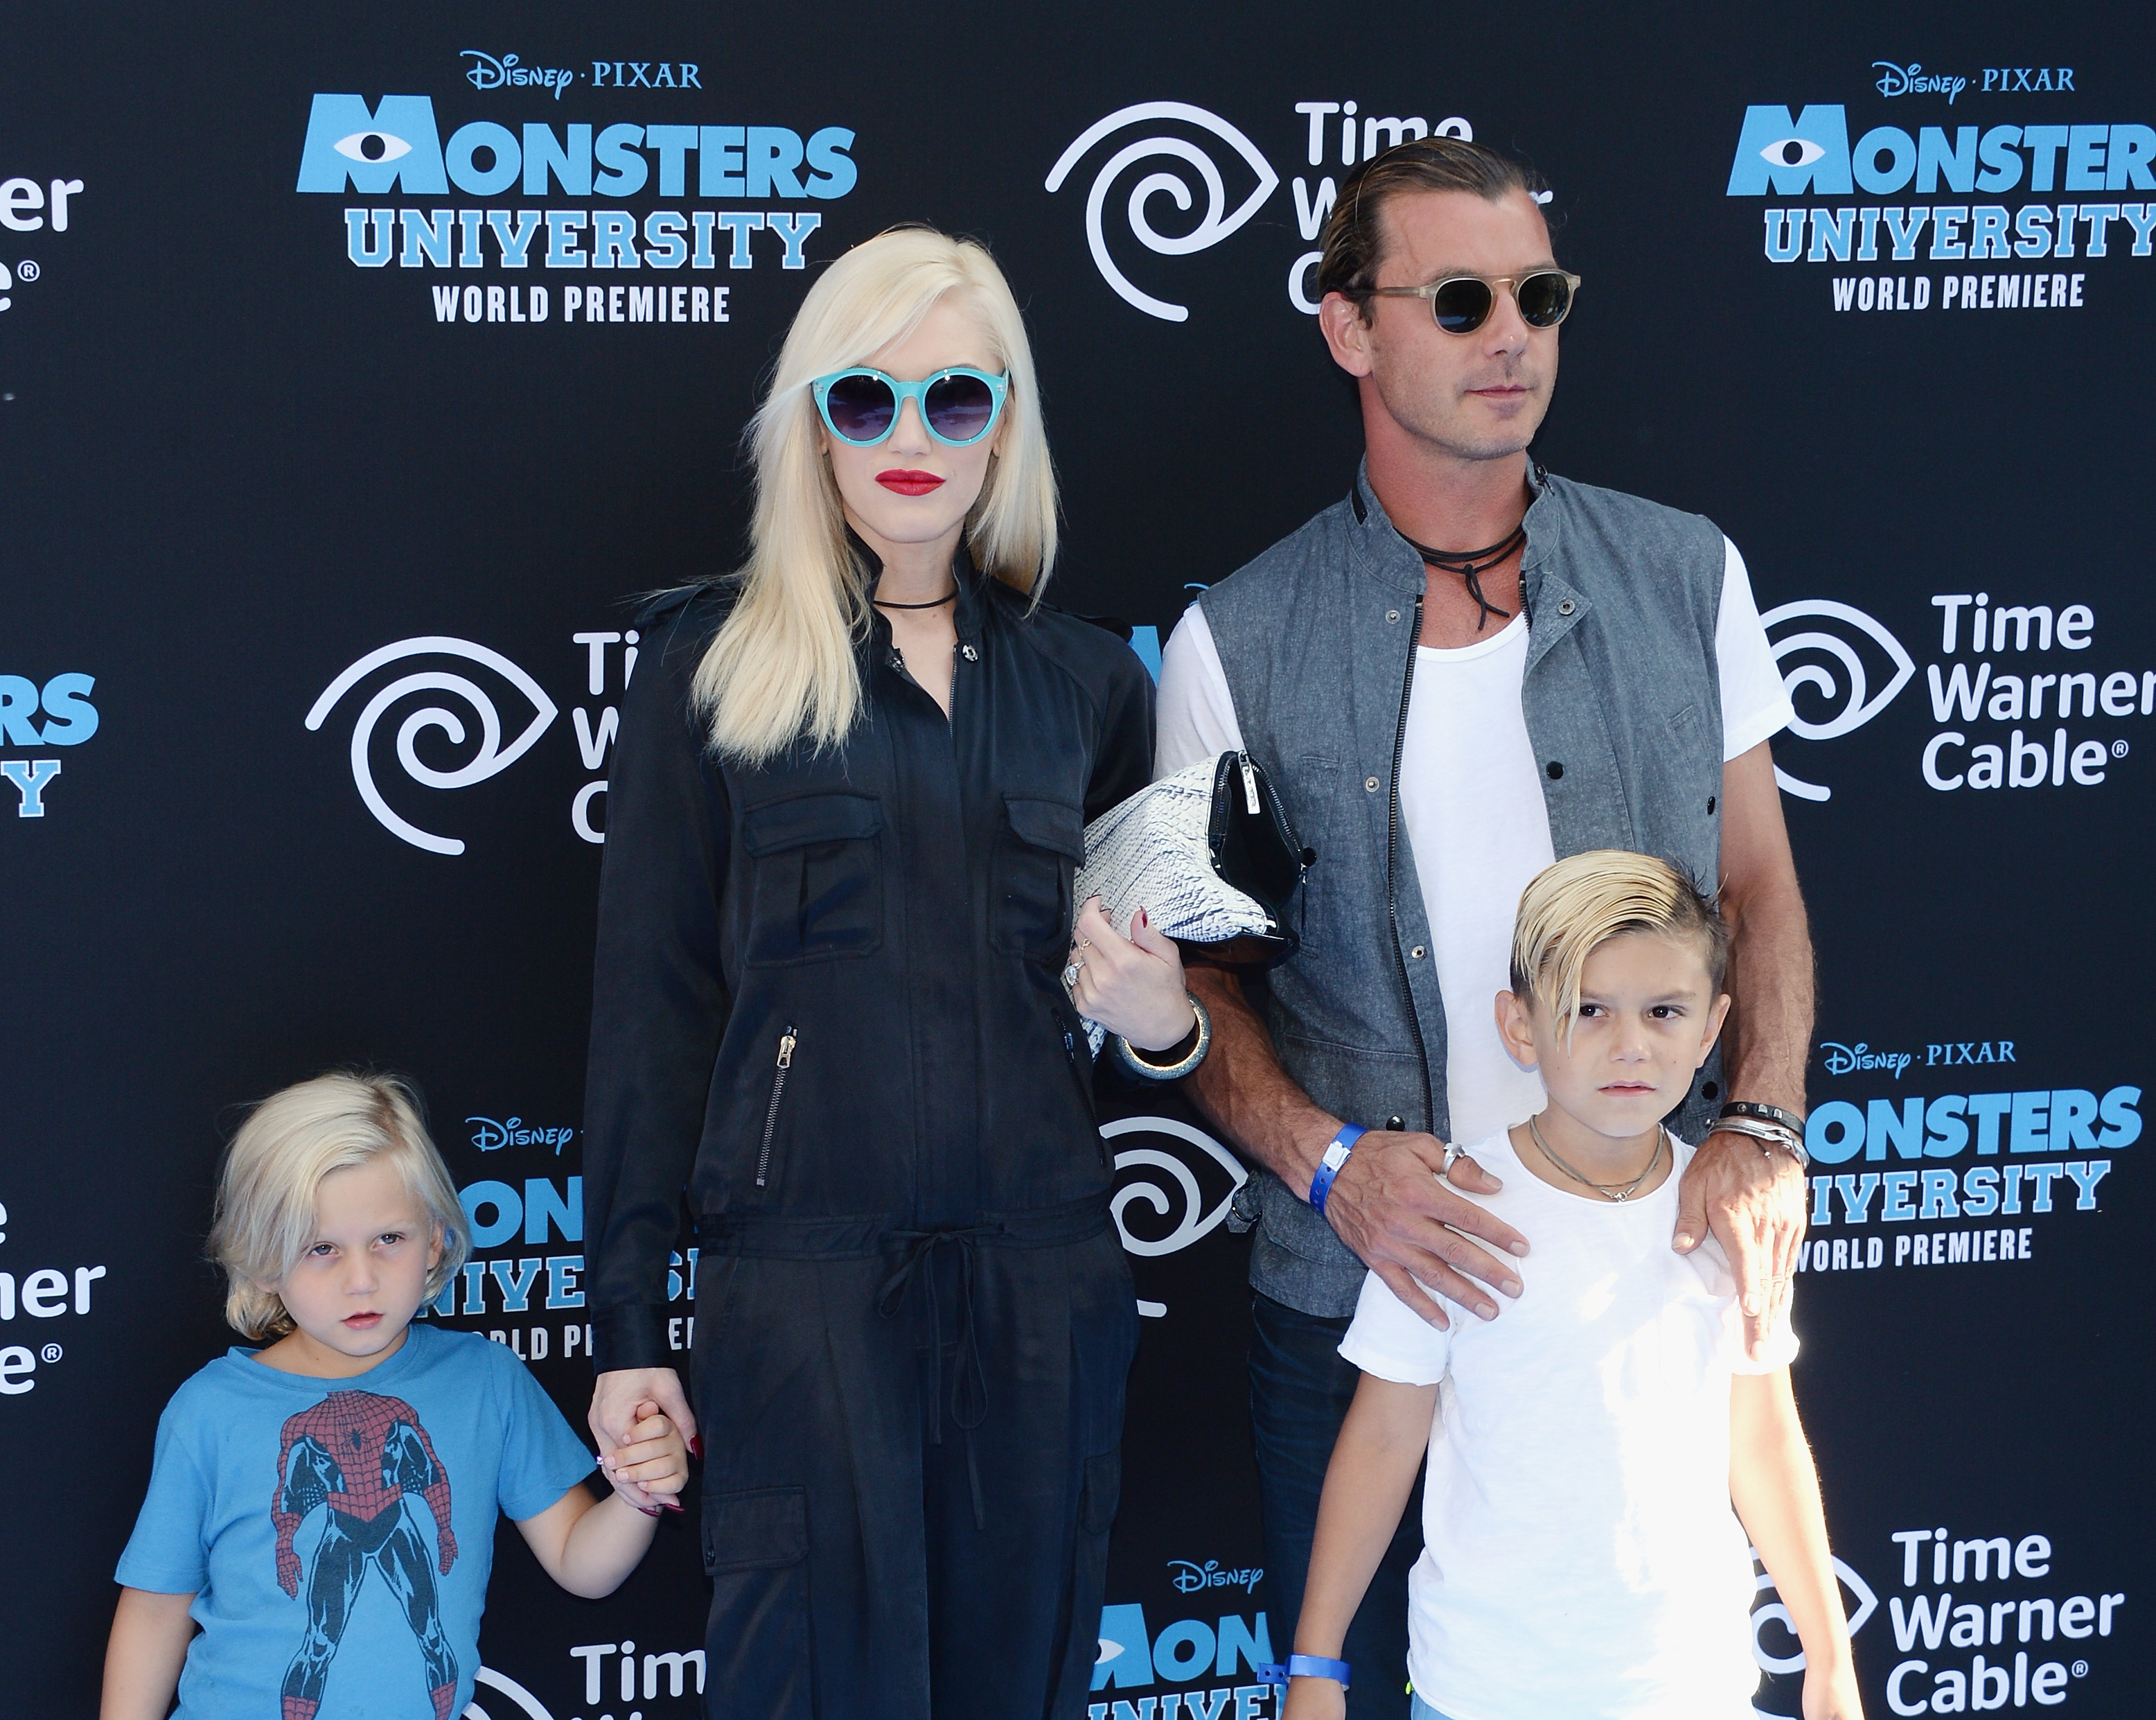 Zuma Nesta Rock Rossdale, Gwen Stefani, Gavin Rossdale and Kingston James McGregor Rossdale attend the premiere of Disney Pixar's 'Monsters University' at the El Capitan Theatre on June 17, 2013 in Hollywood, California.